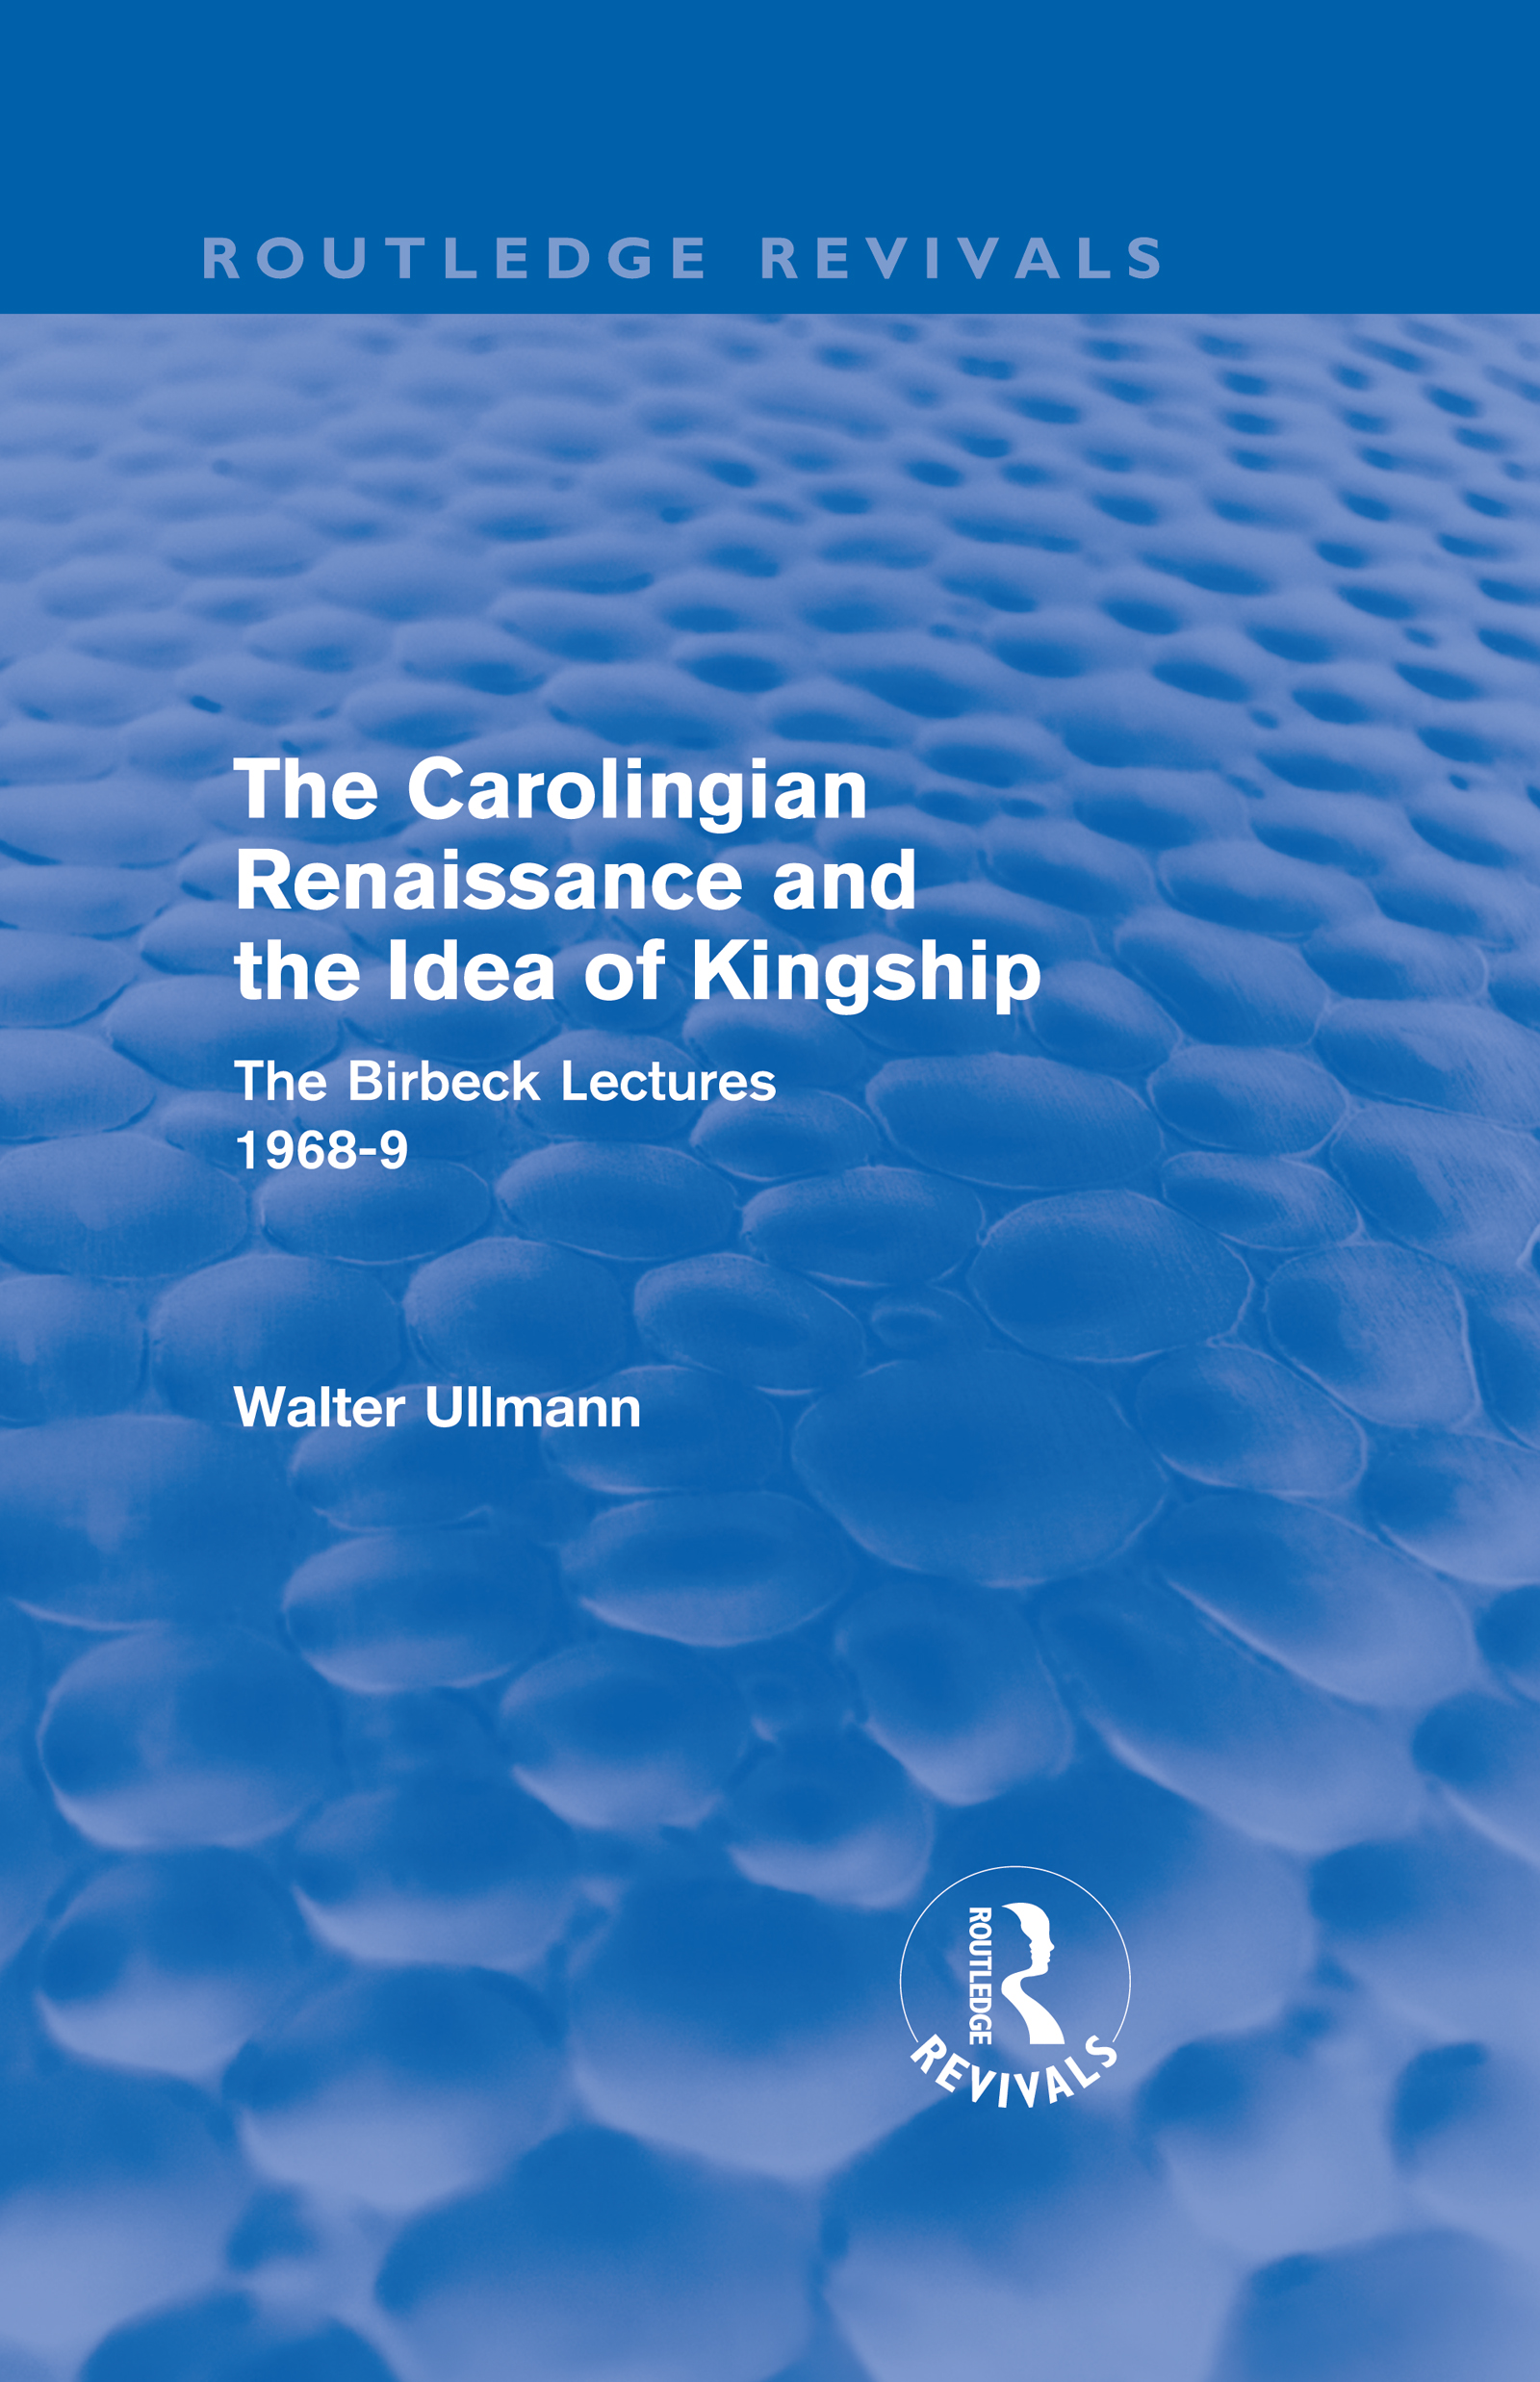 The Carolingian Renaissance and the Idea of Kingship (Routledge Revivals) (Hardback) book cover